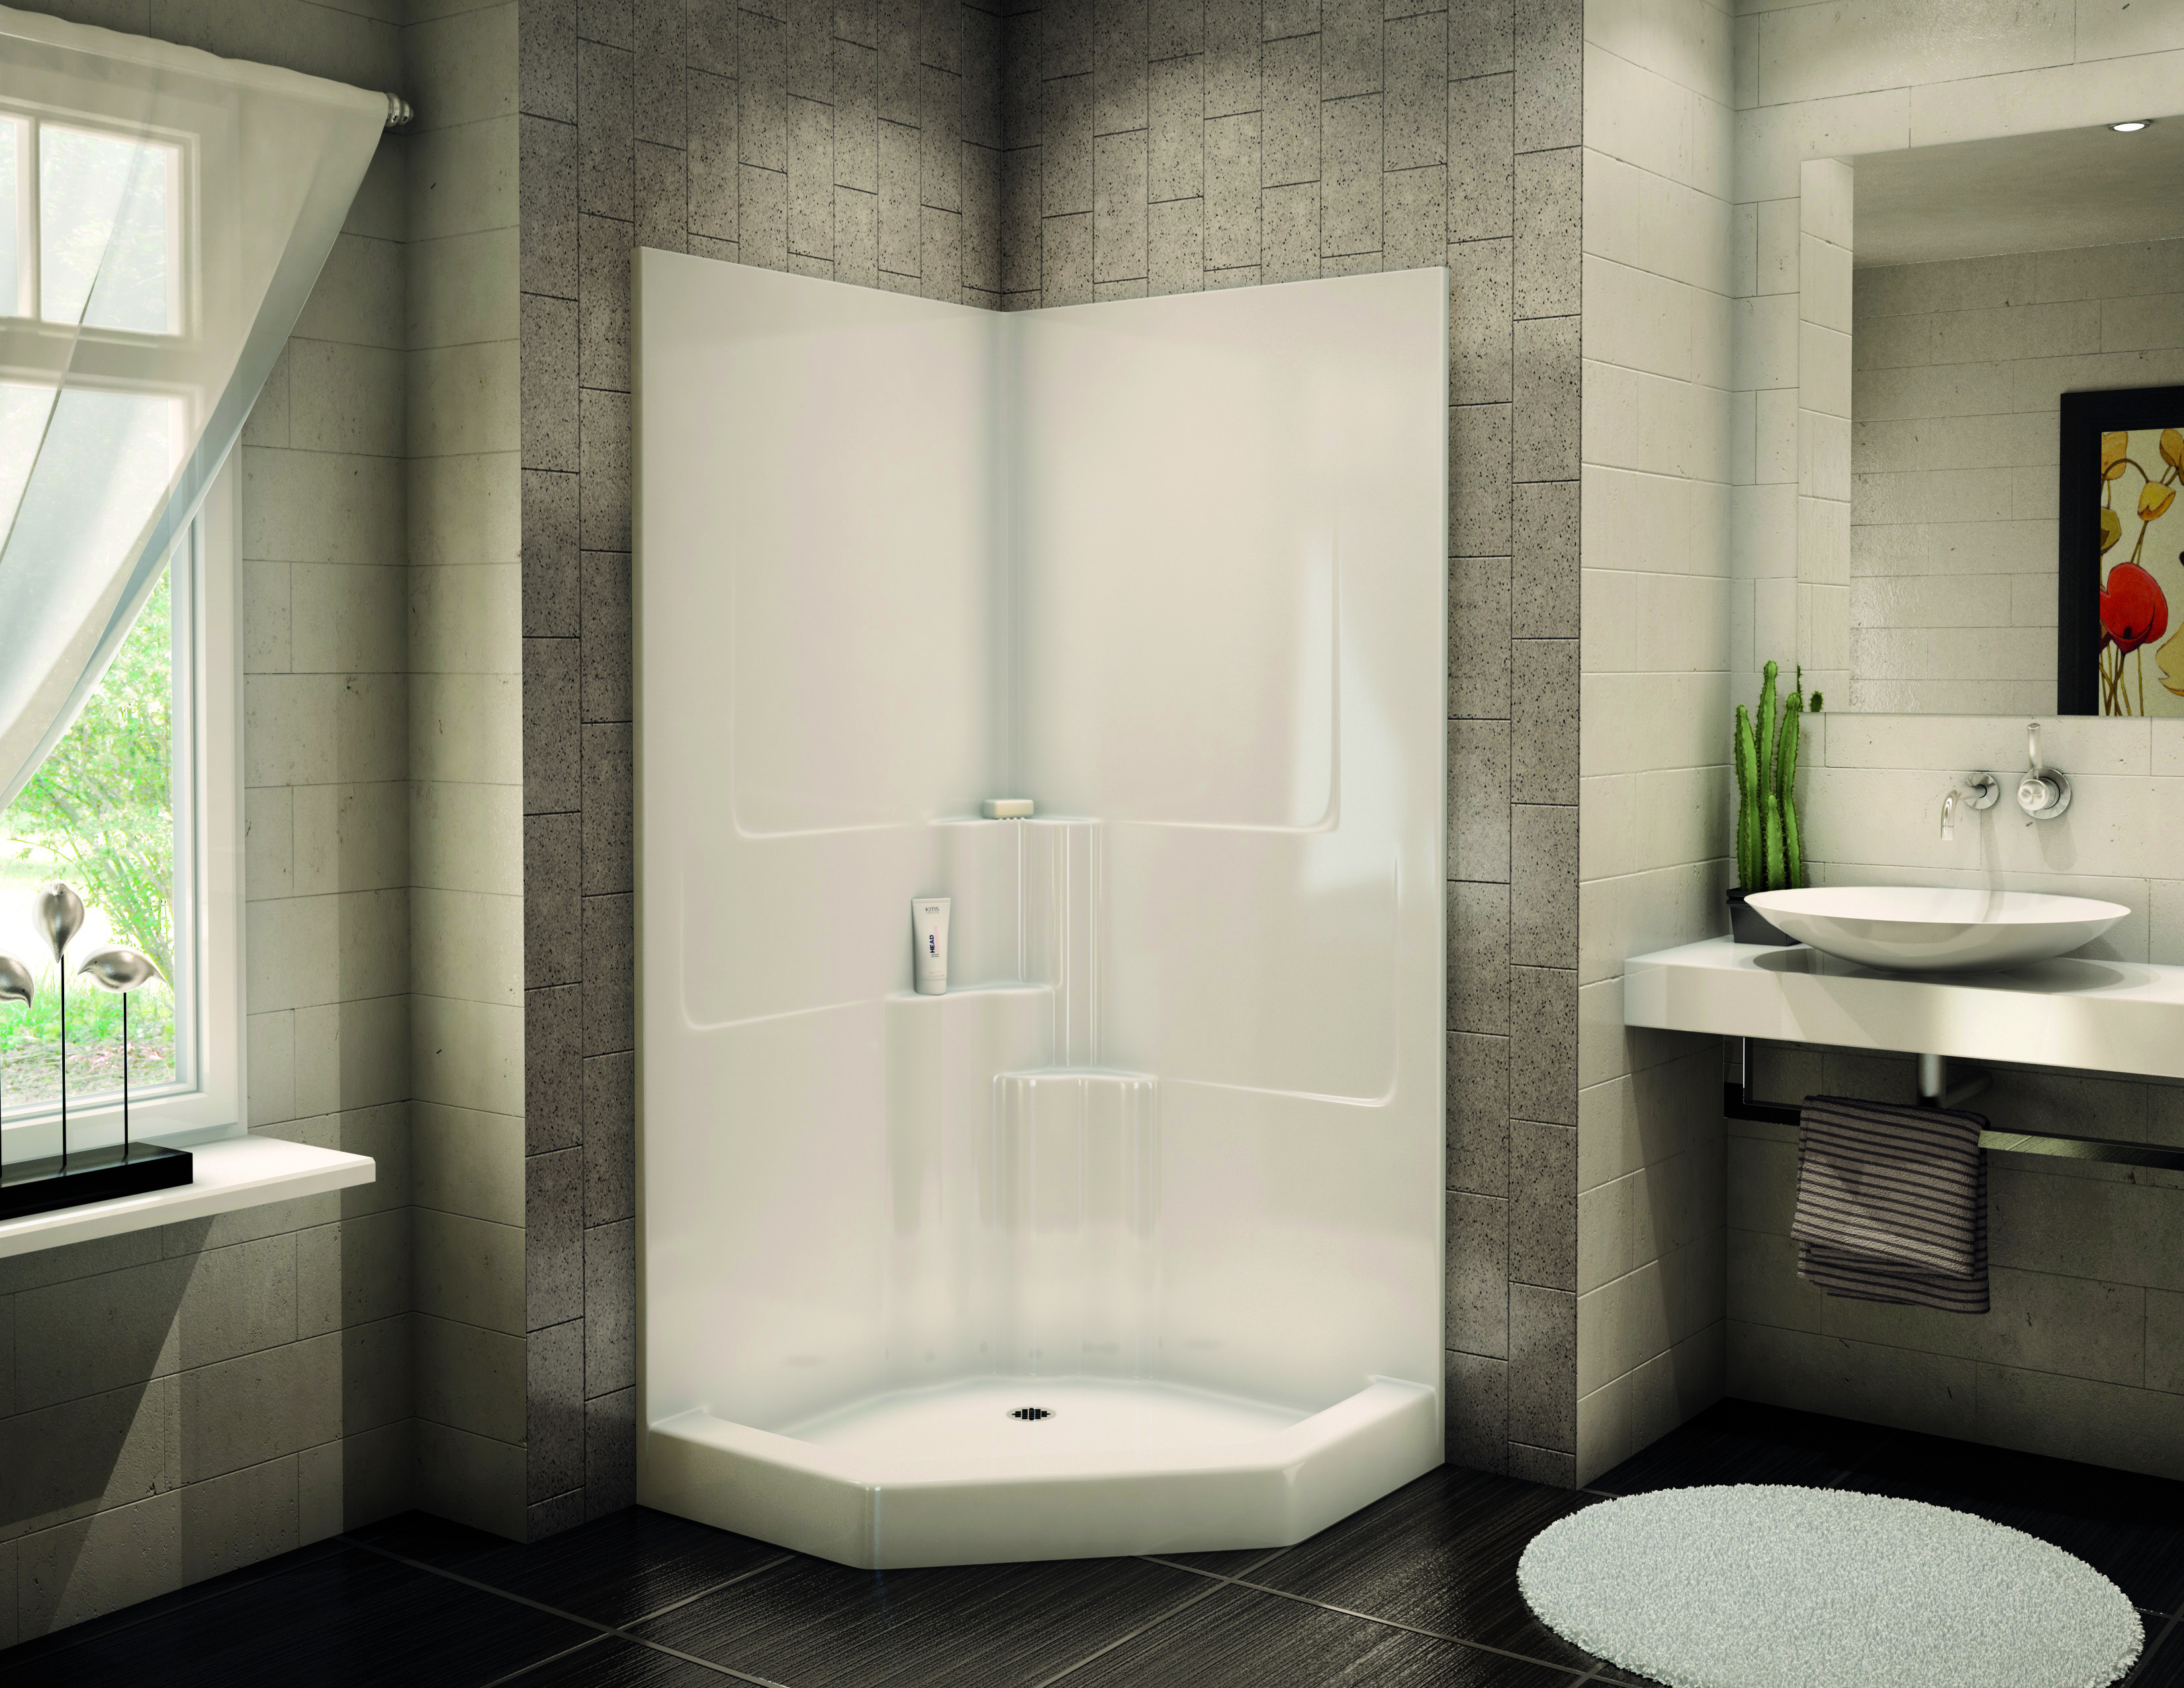 How To Recycle Construction Shower Stall Prefab Fiberglass In Santa Clara And San Mateo Counties Recycle Stuff